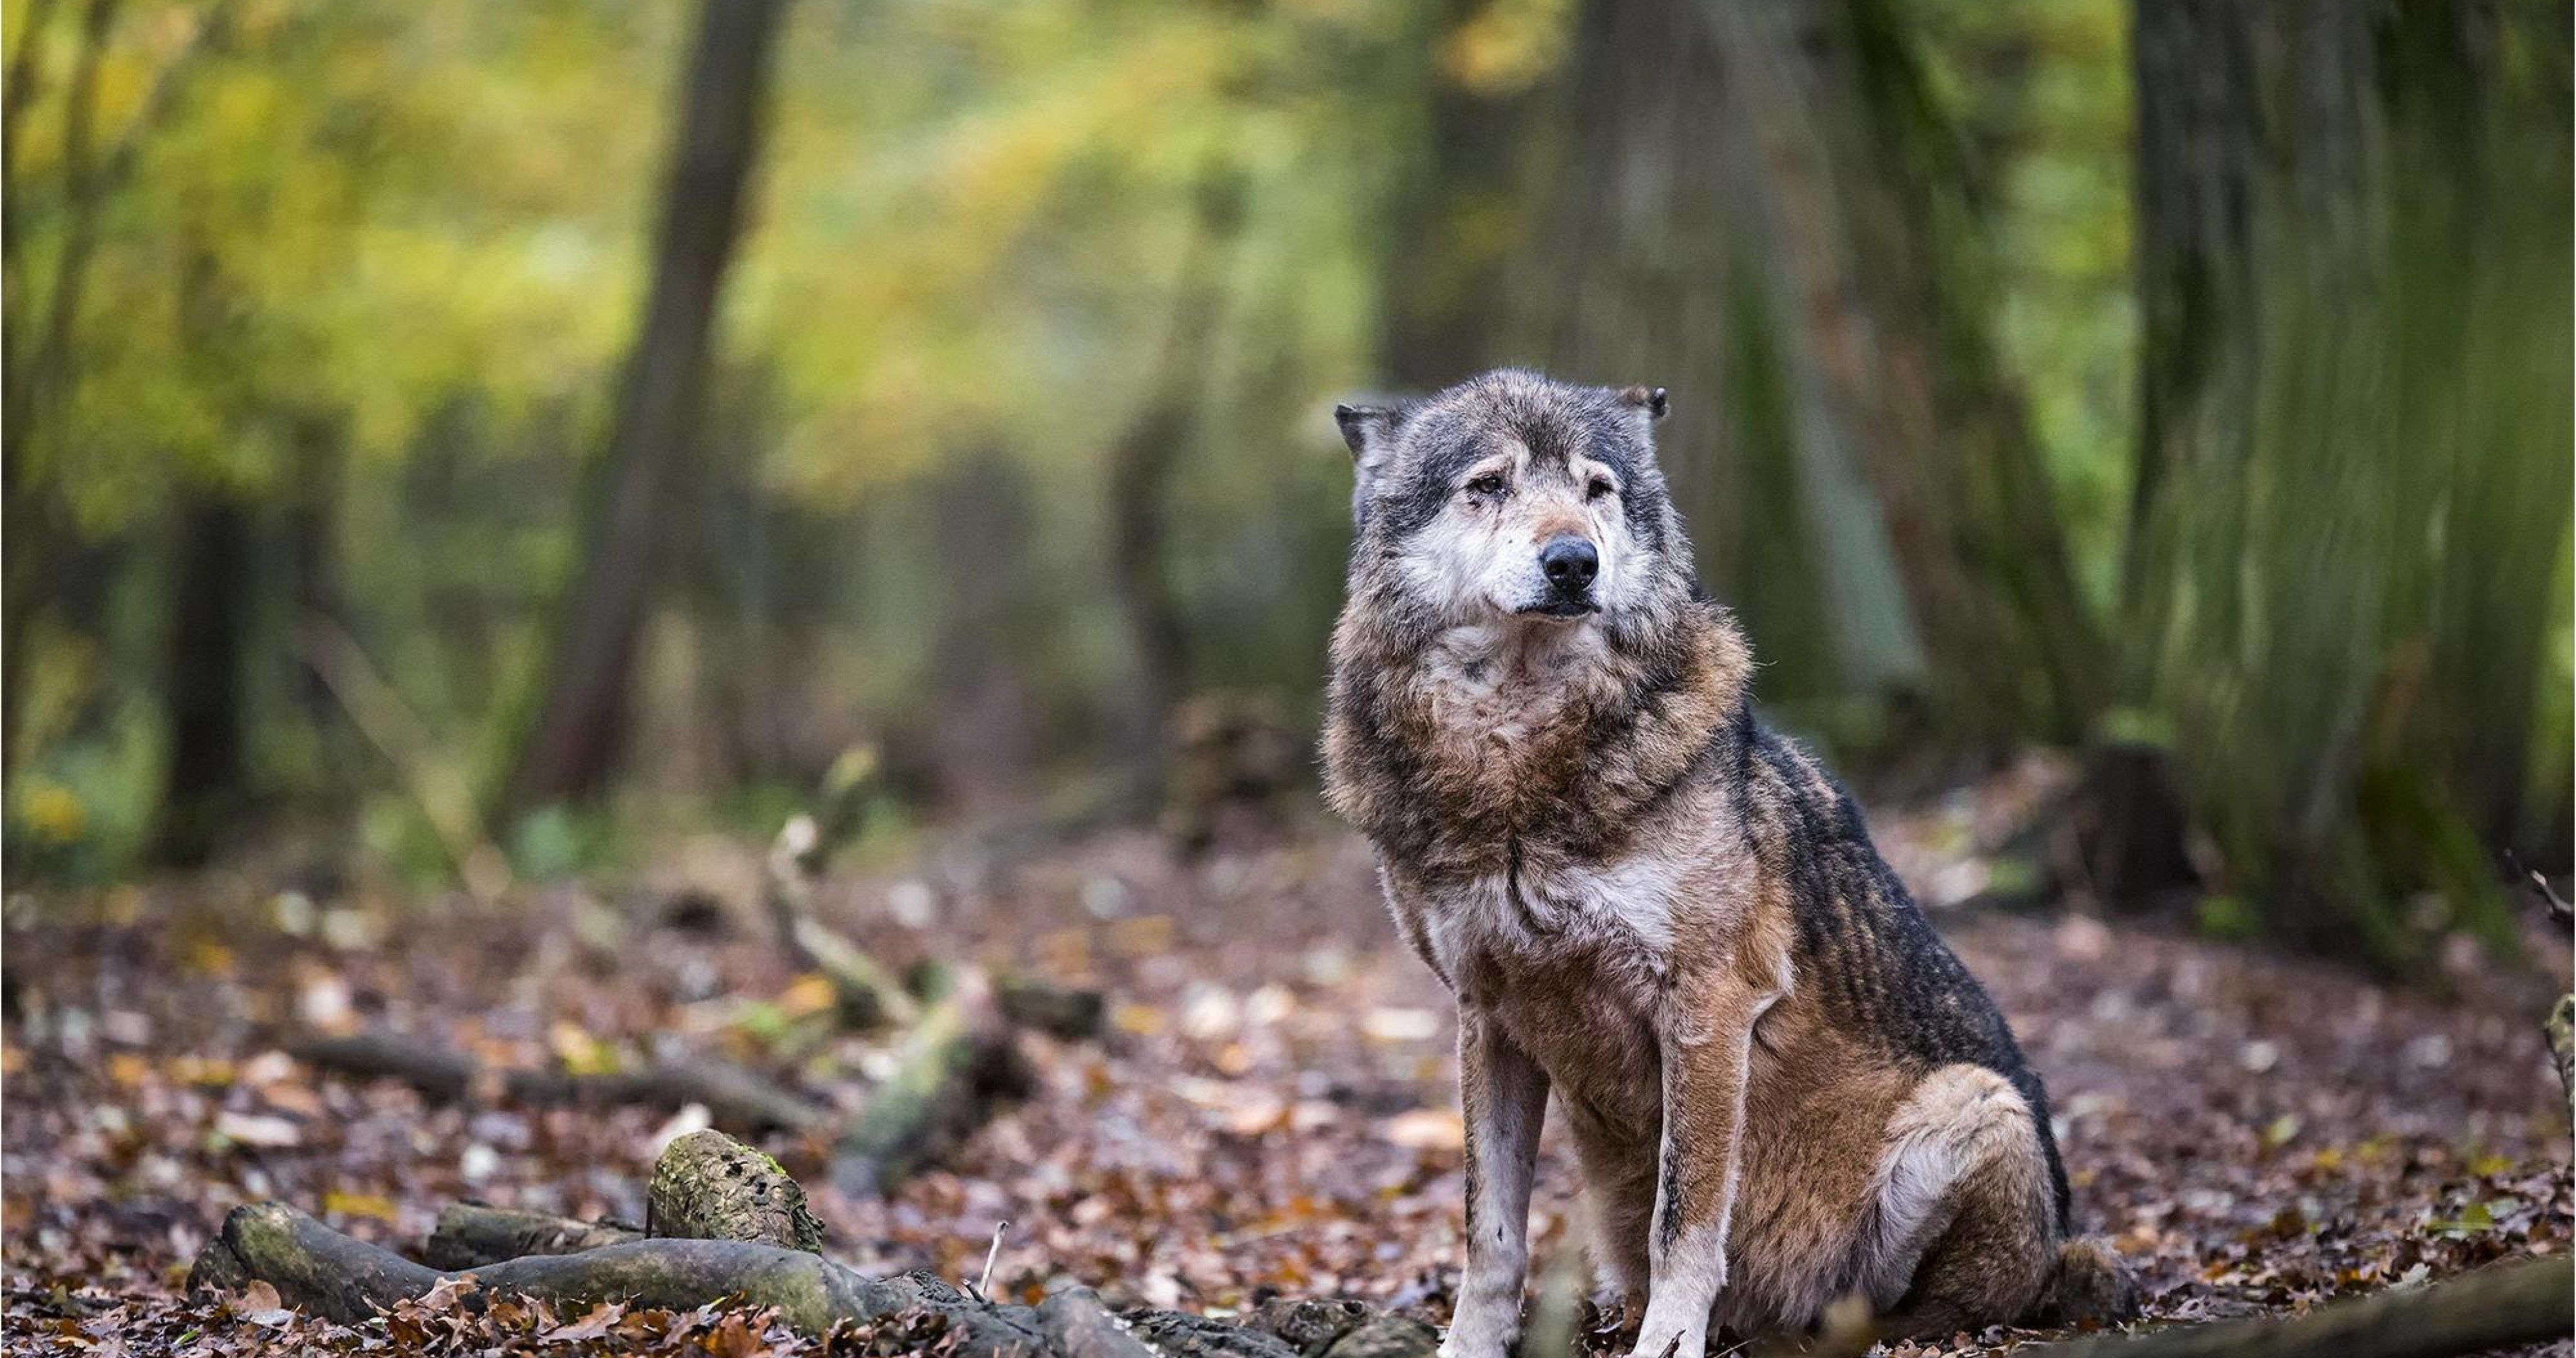 Beautiful Quotes Wallpaper For Facebook The Wolf In Forest 4k Ultra Hd Wallpaper Ultra Hd